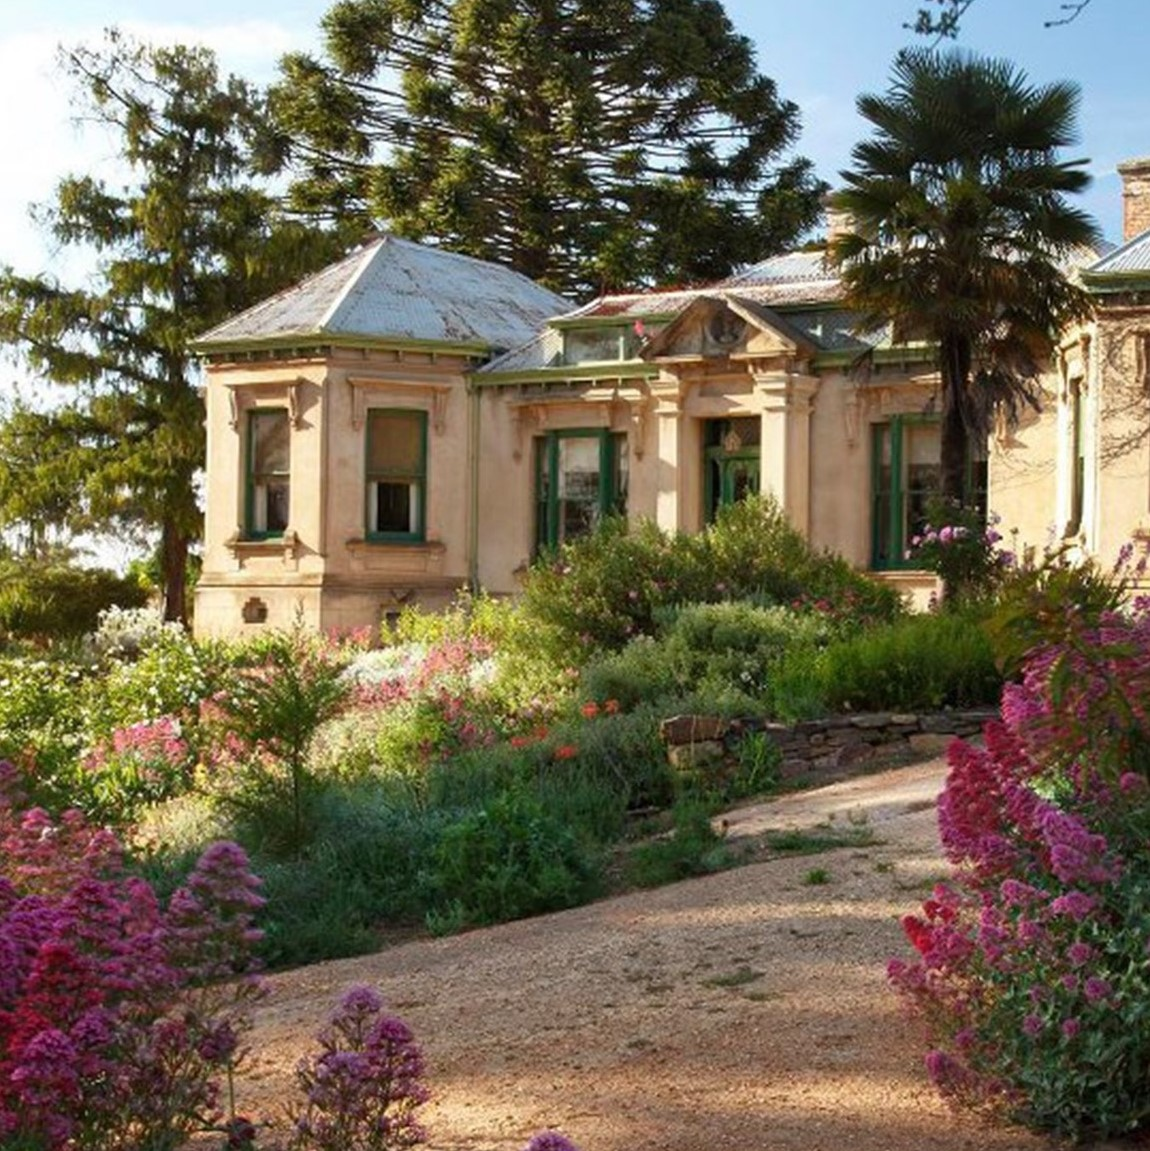 test Twitter Media - Just some of the most romantic spots around Victoria:  ❤️ Peninsula Hot Springs on the Mornington Peninsula  ❤️ Buda Historic Home and Garden in Castlemaine https://t.co/yRSmY81VTv